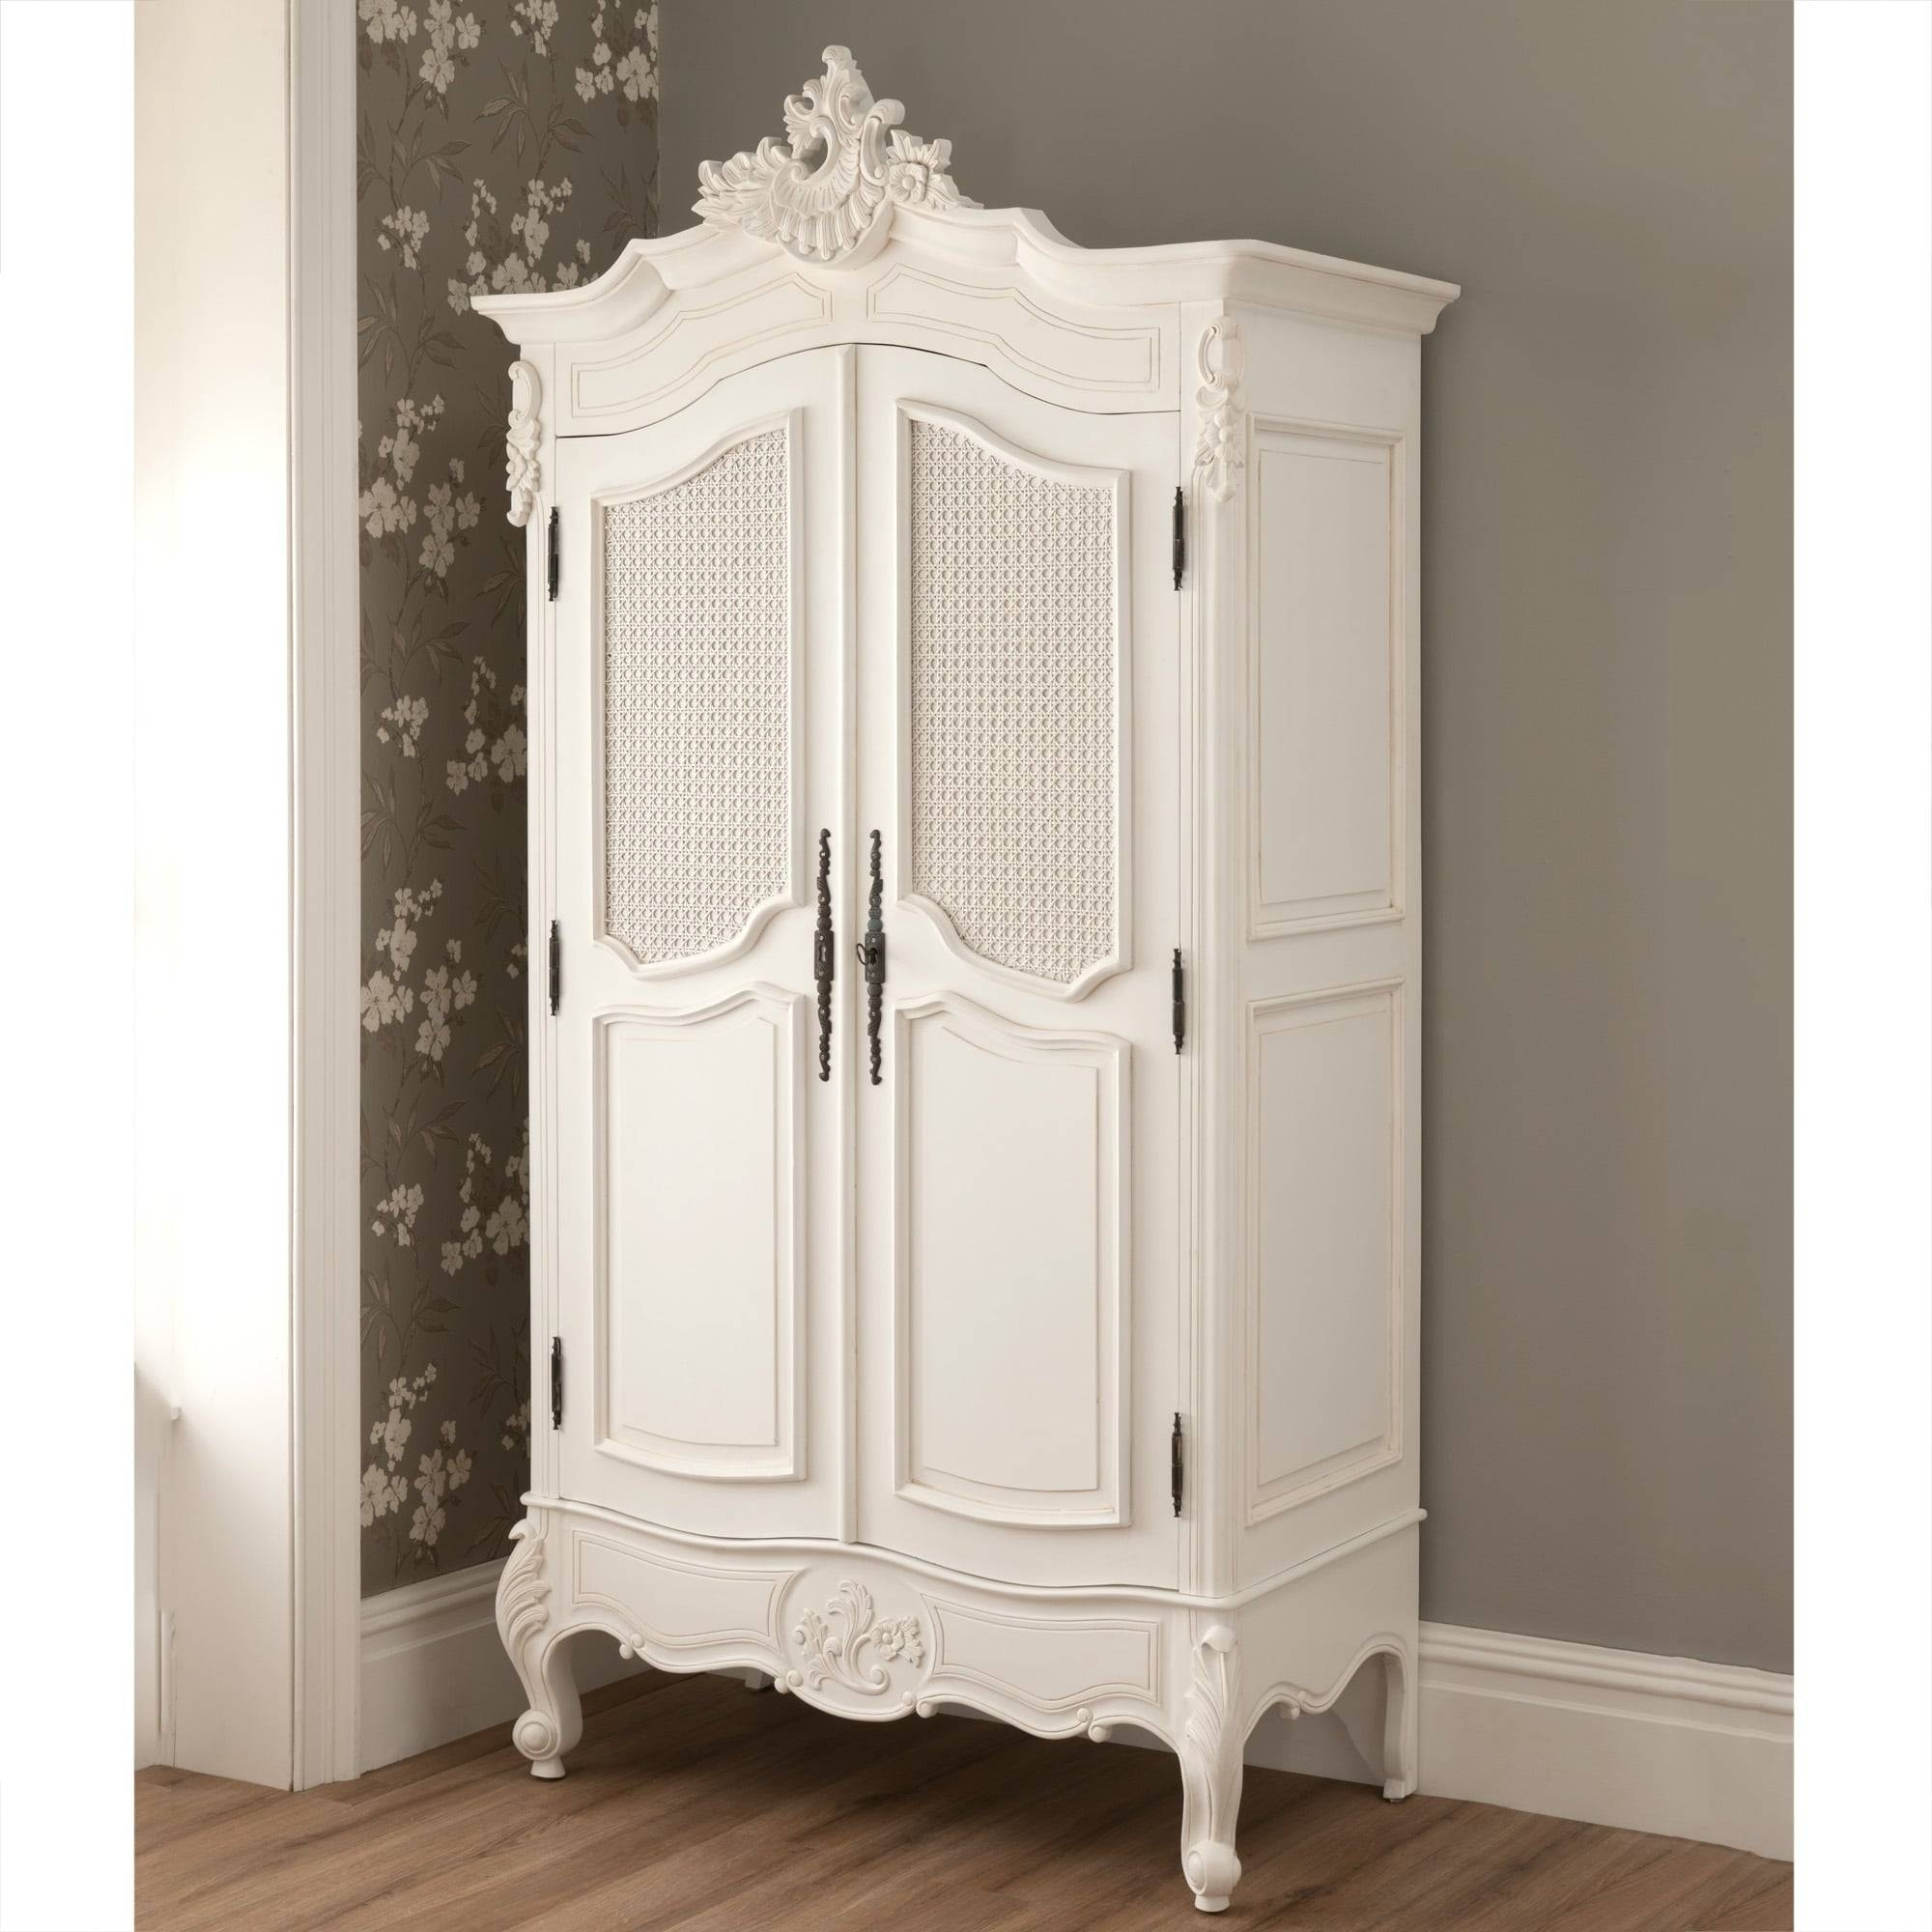 La Rochelle 2 Door Antique French Rattan Wardrobe with regard to White Wicker Wardrobes (Image 9 of 15)